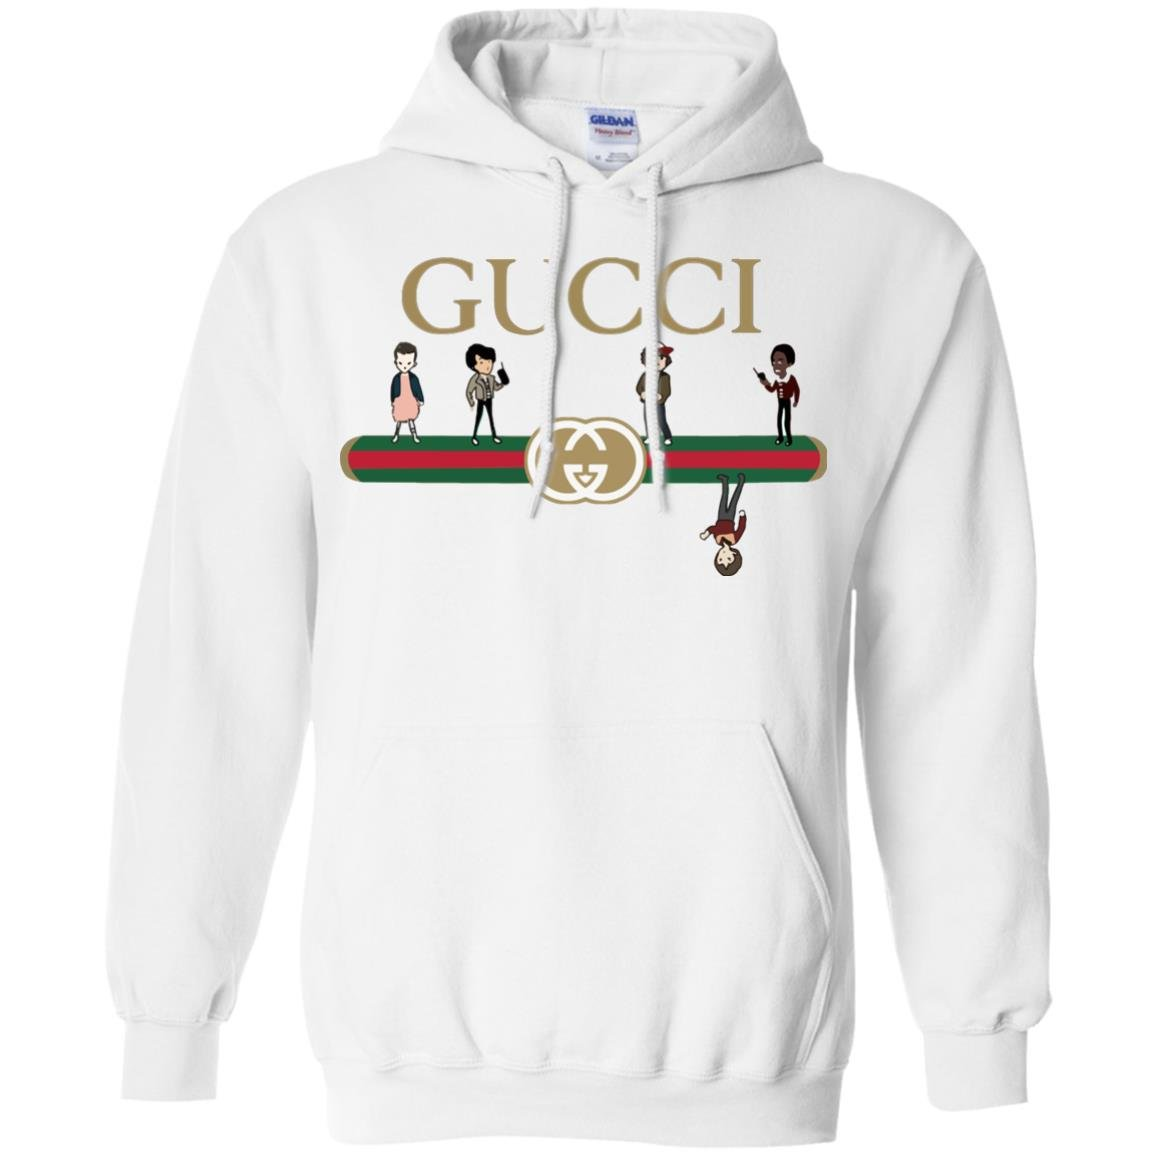 gucci stranger things sweater shirt hoodie rockatee. Black Bedroom Furniture Sets. Home Design Ideas